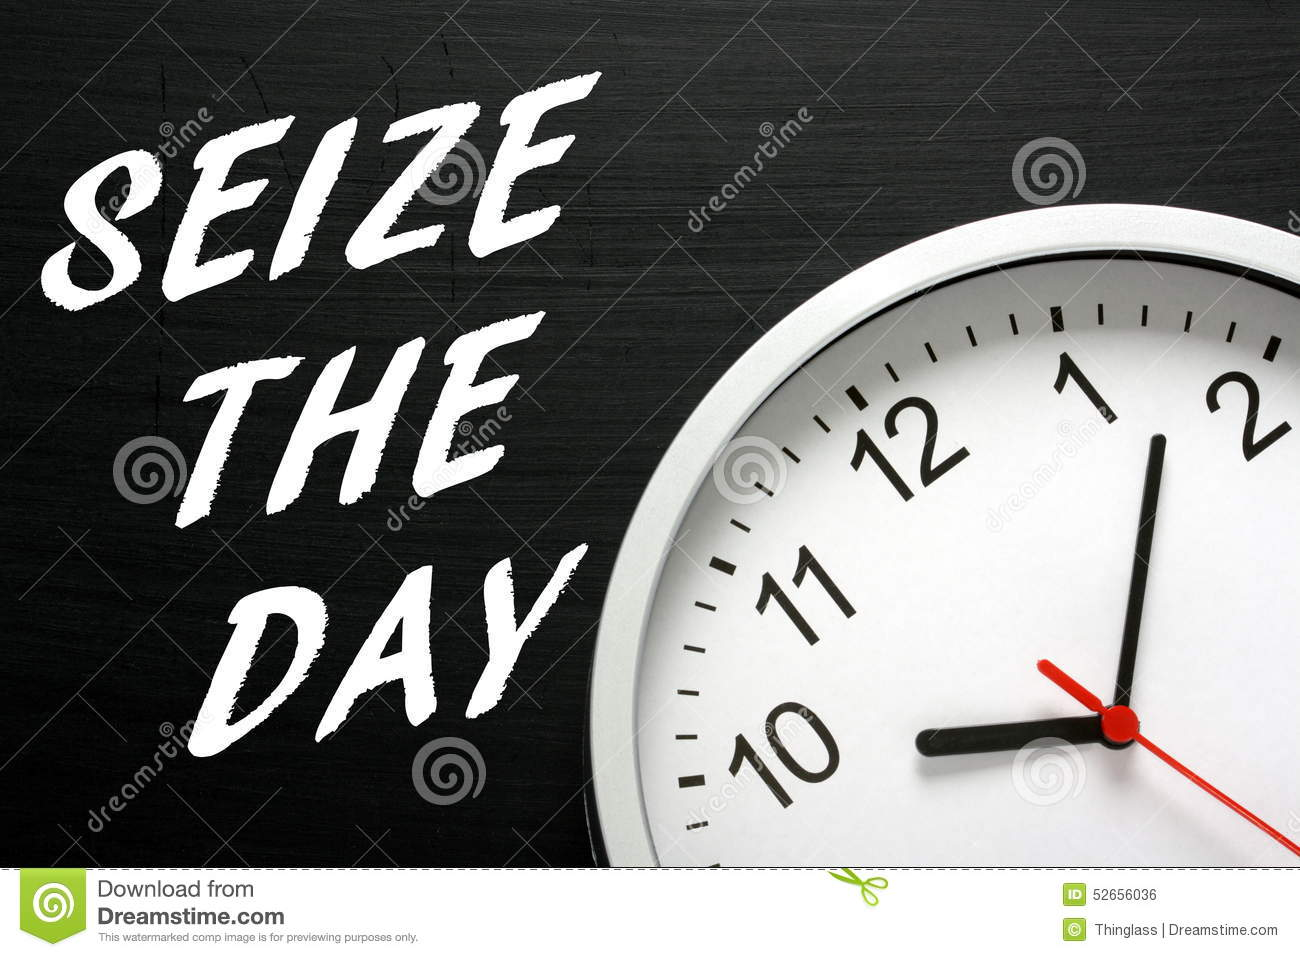 Seize The Day Stock Photo Image 52656036